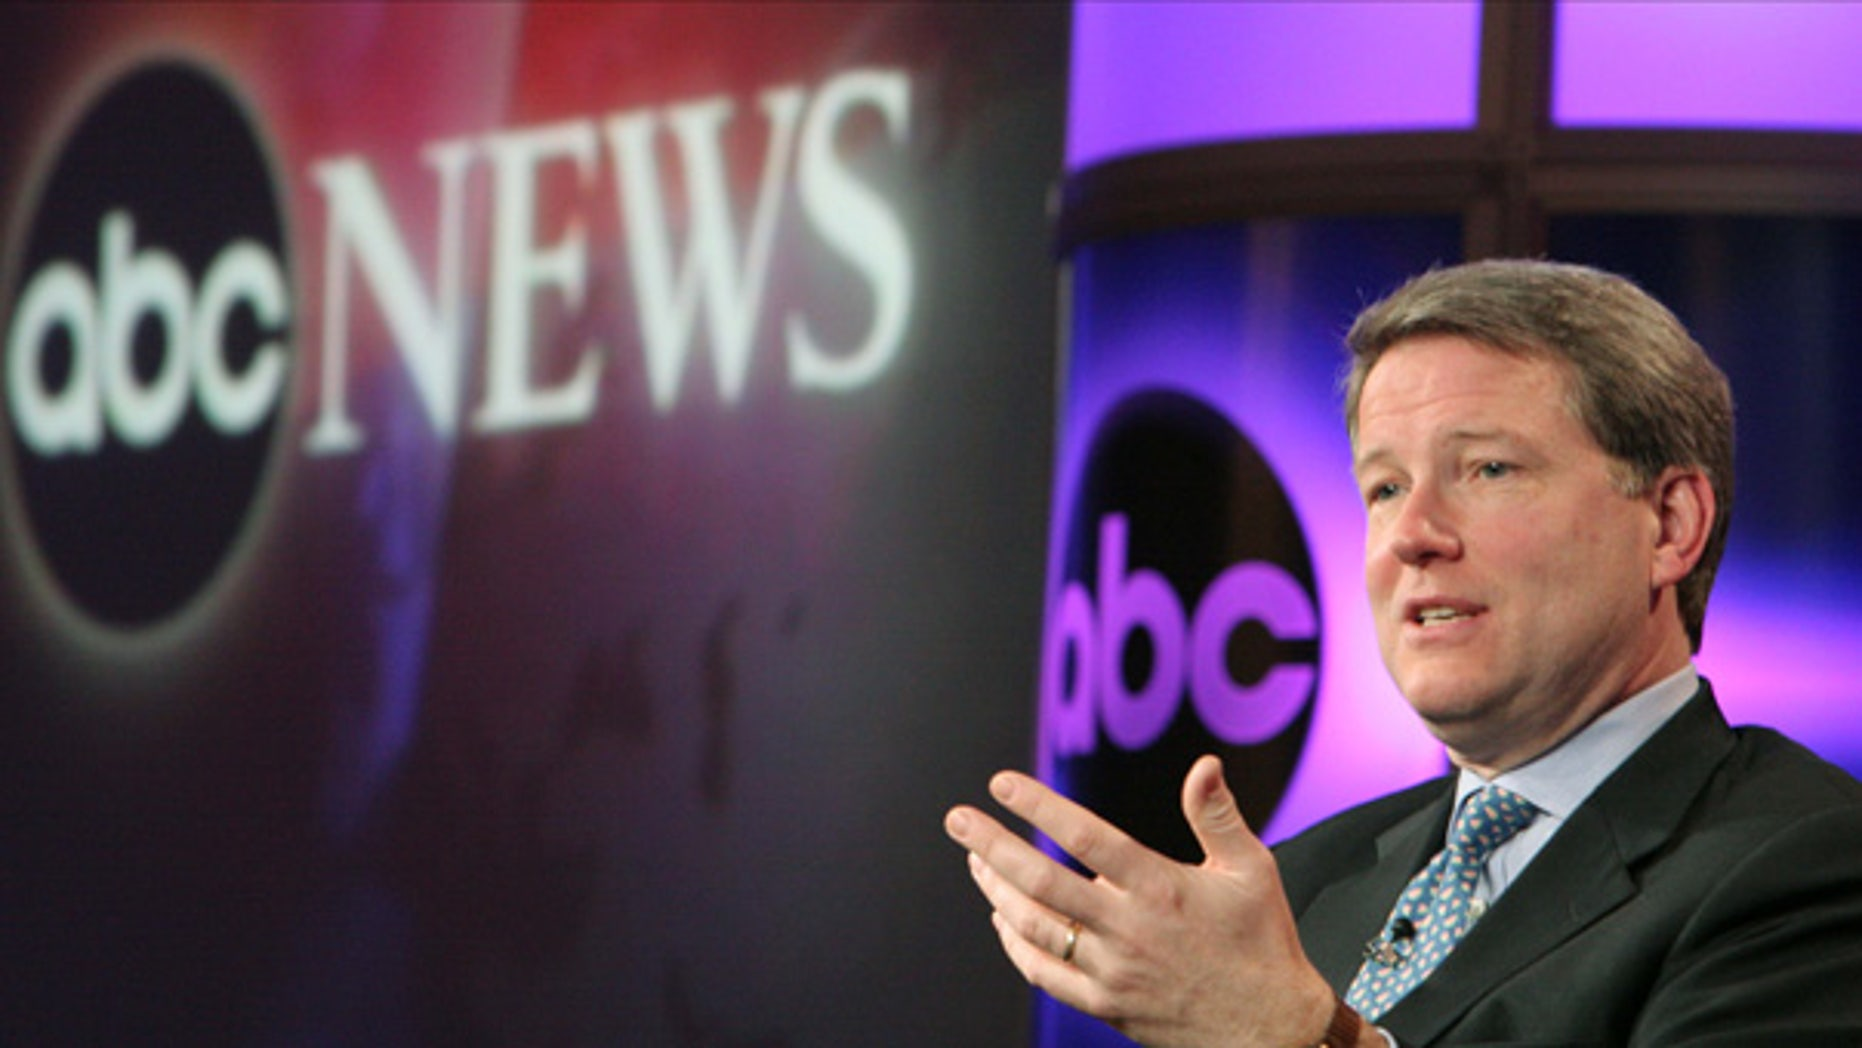 ABC News chief David Westin said in a memo to his staff on Monday that he is stepping down at the end of the year after more than 13 years on the job.